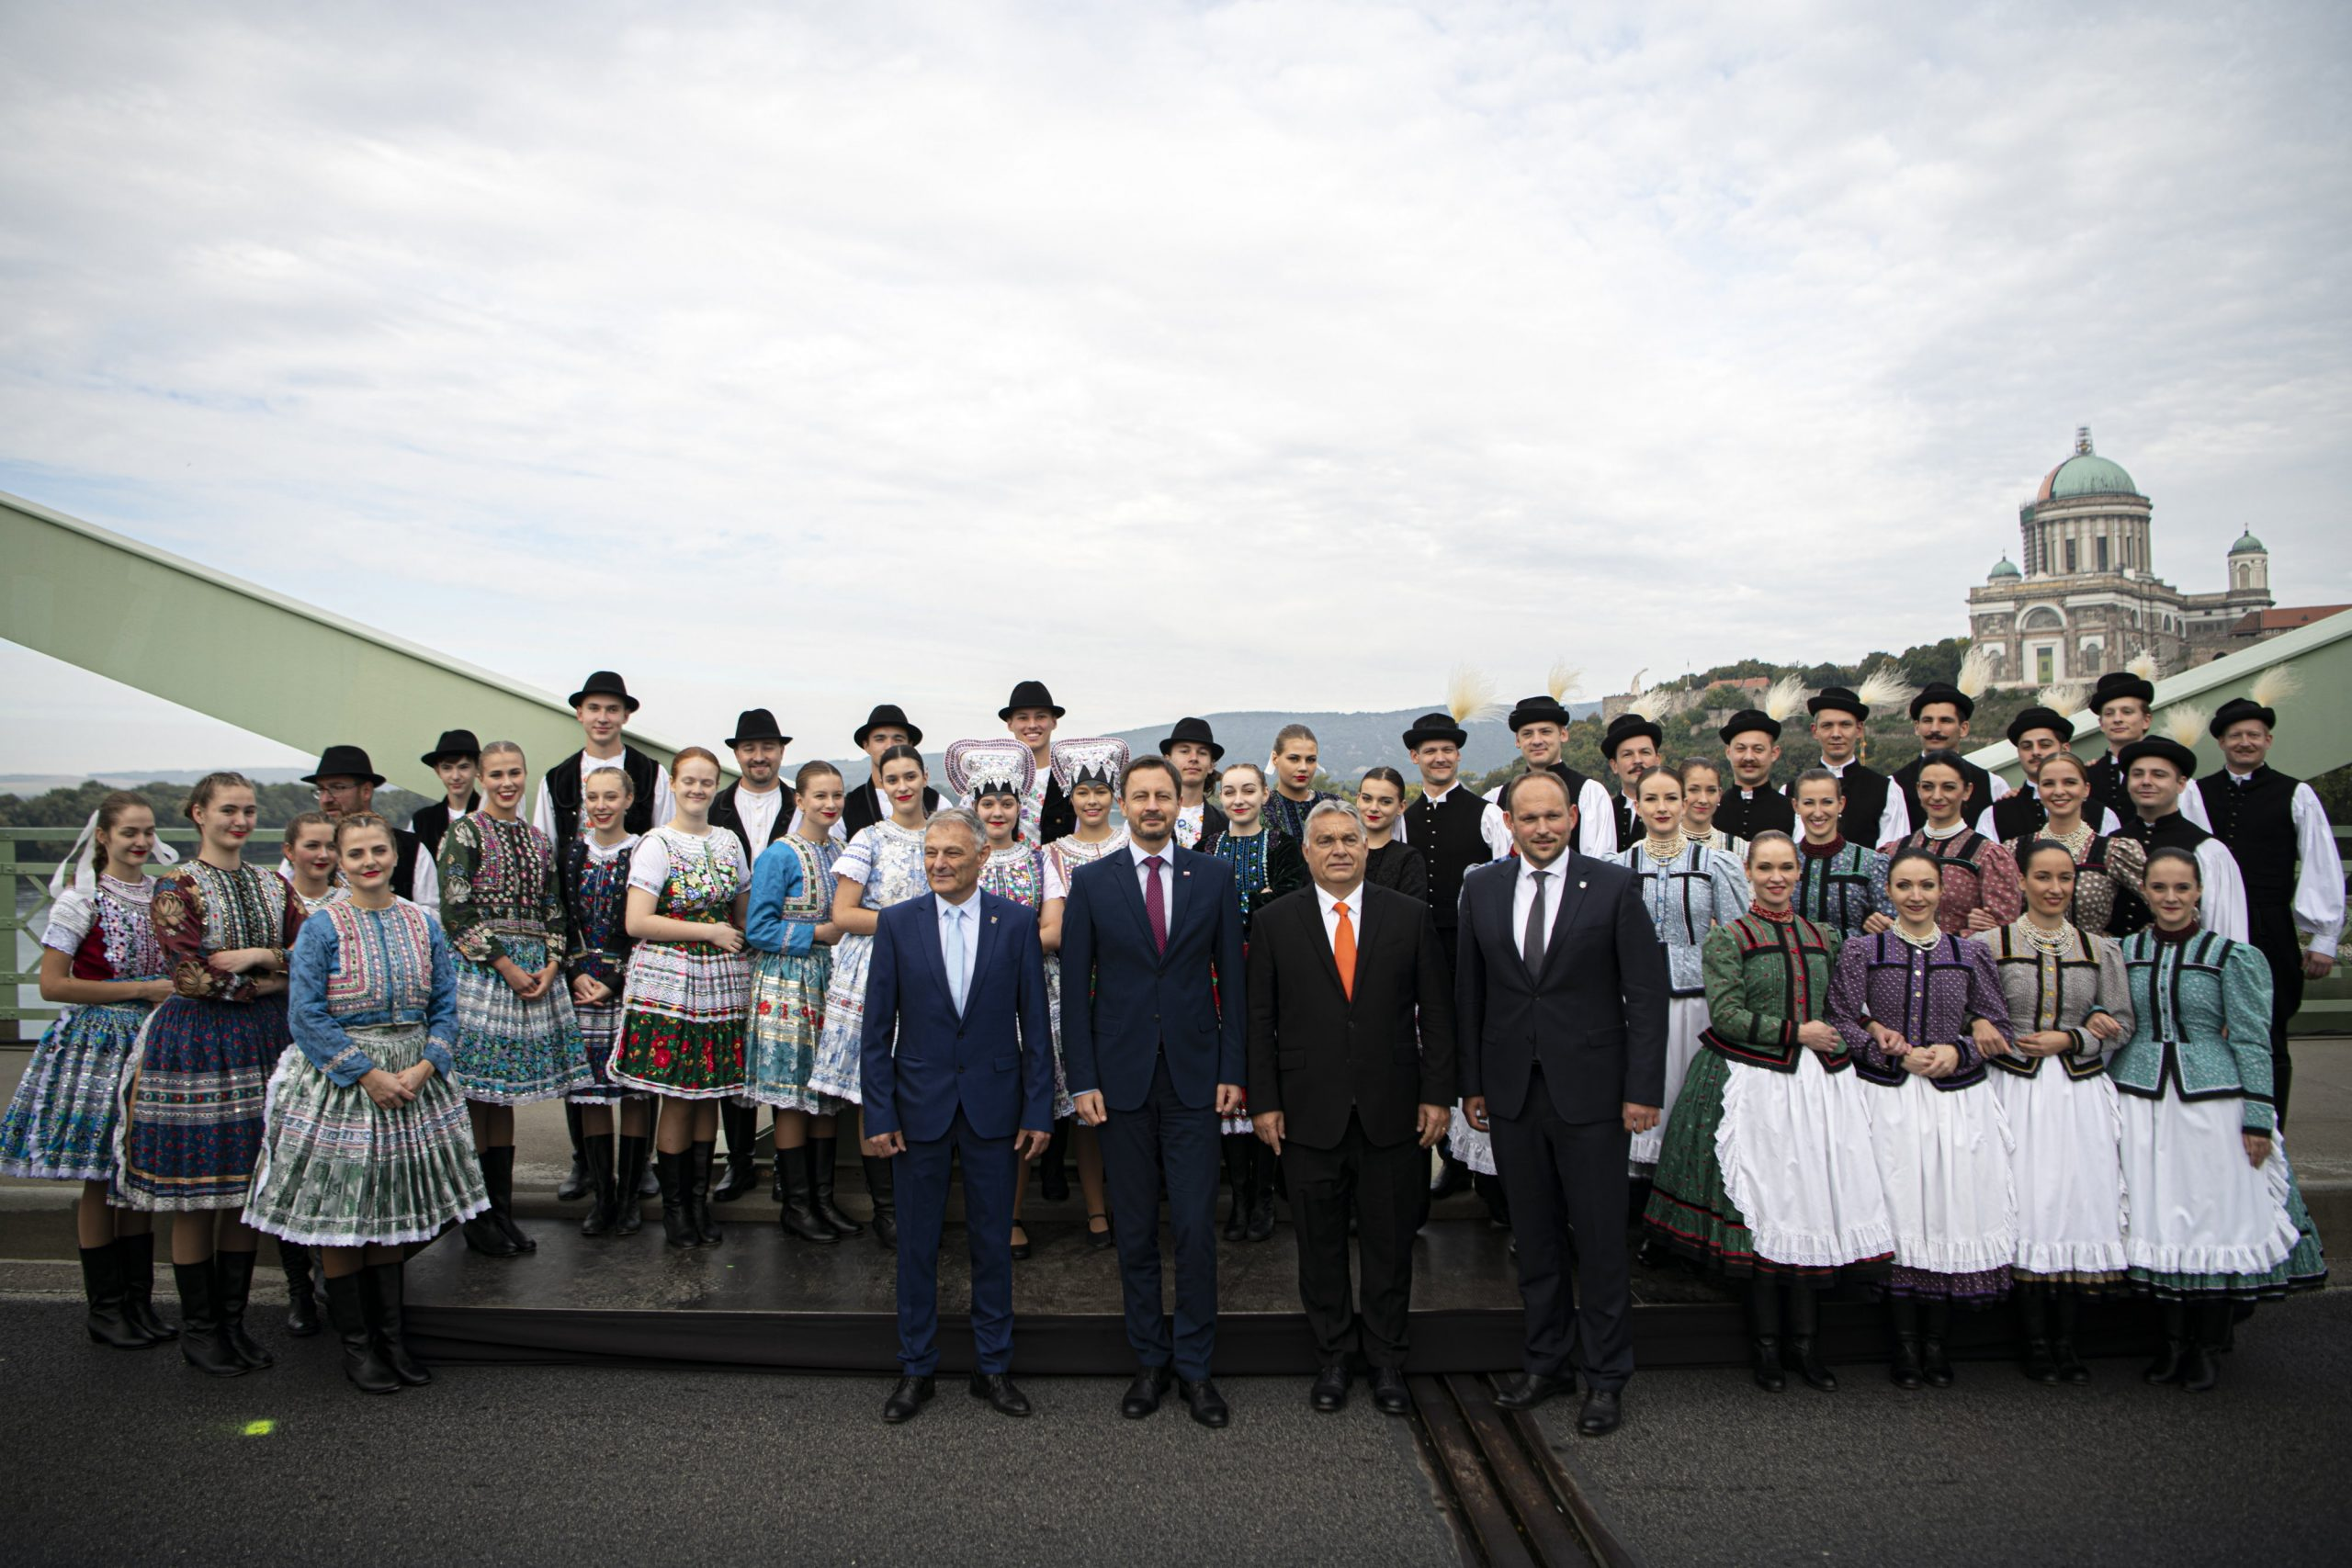 PM Orbán: Central Europe's Survival Dependent on Cooperation